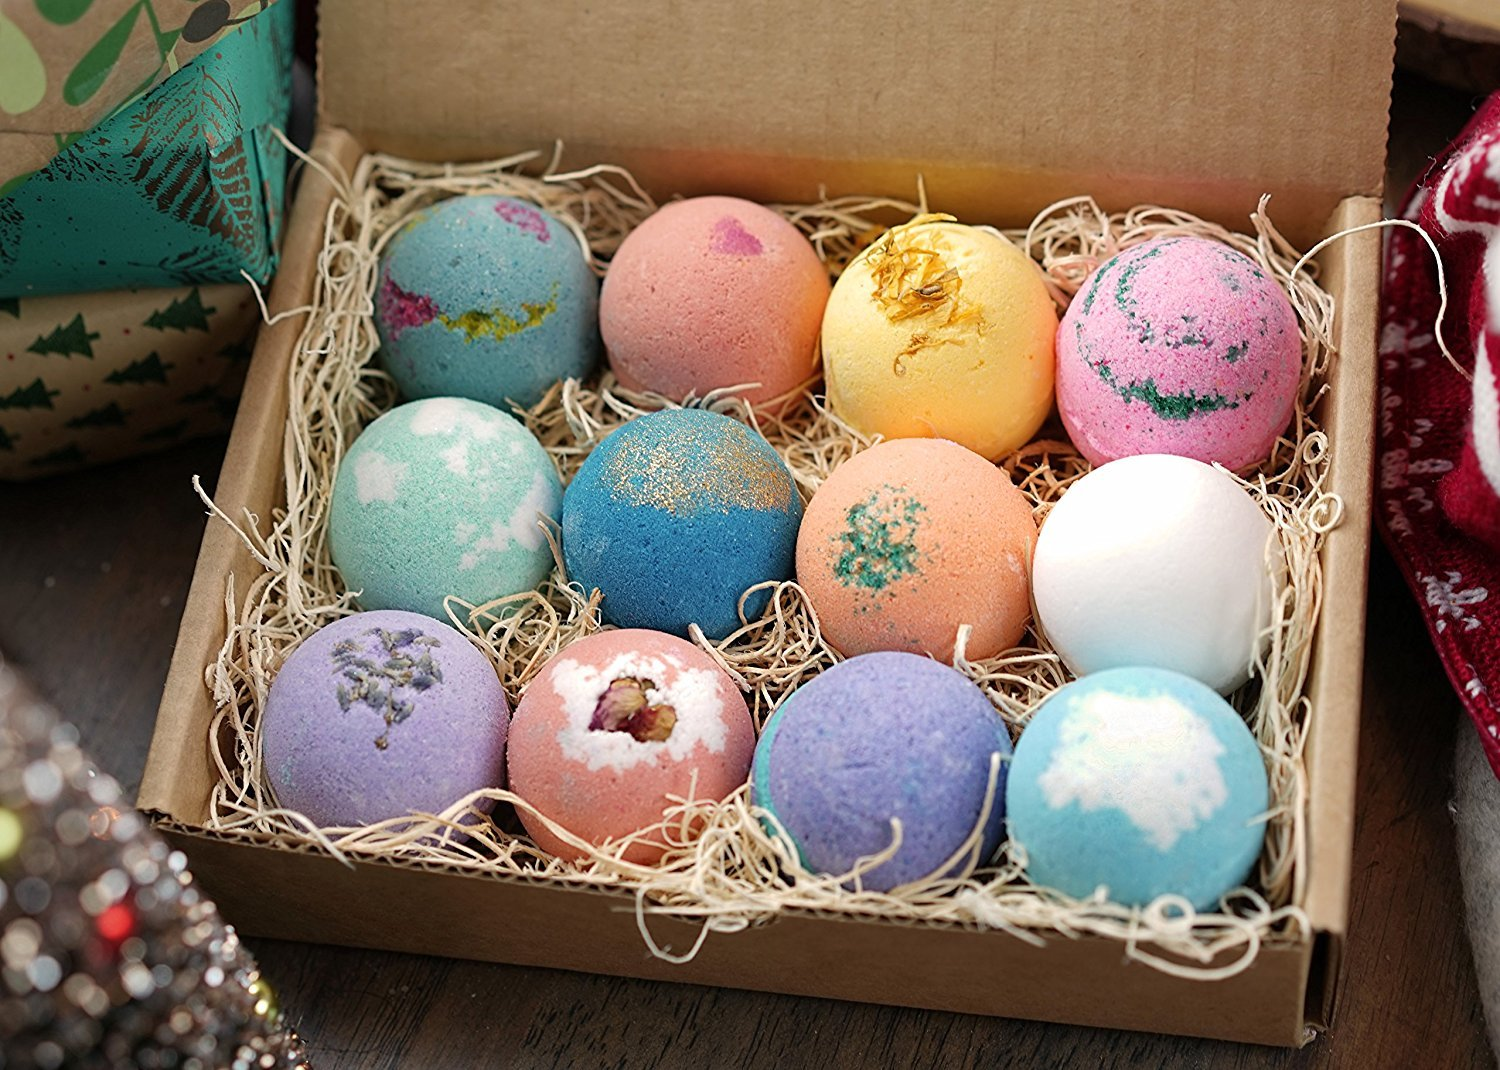 LifeAround2Angels Bath Bombs Gift Set 12 USA made Fizzies Shea  Coco Butter Dry Skin Moisturize